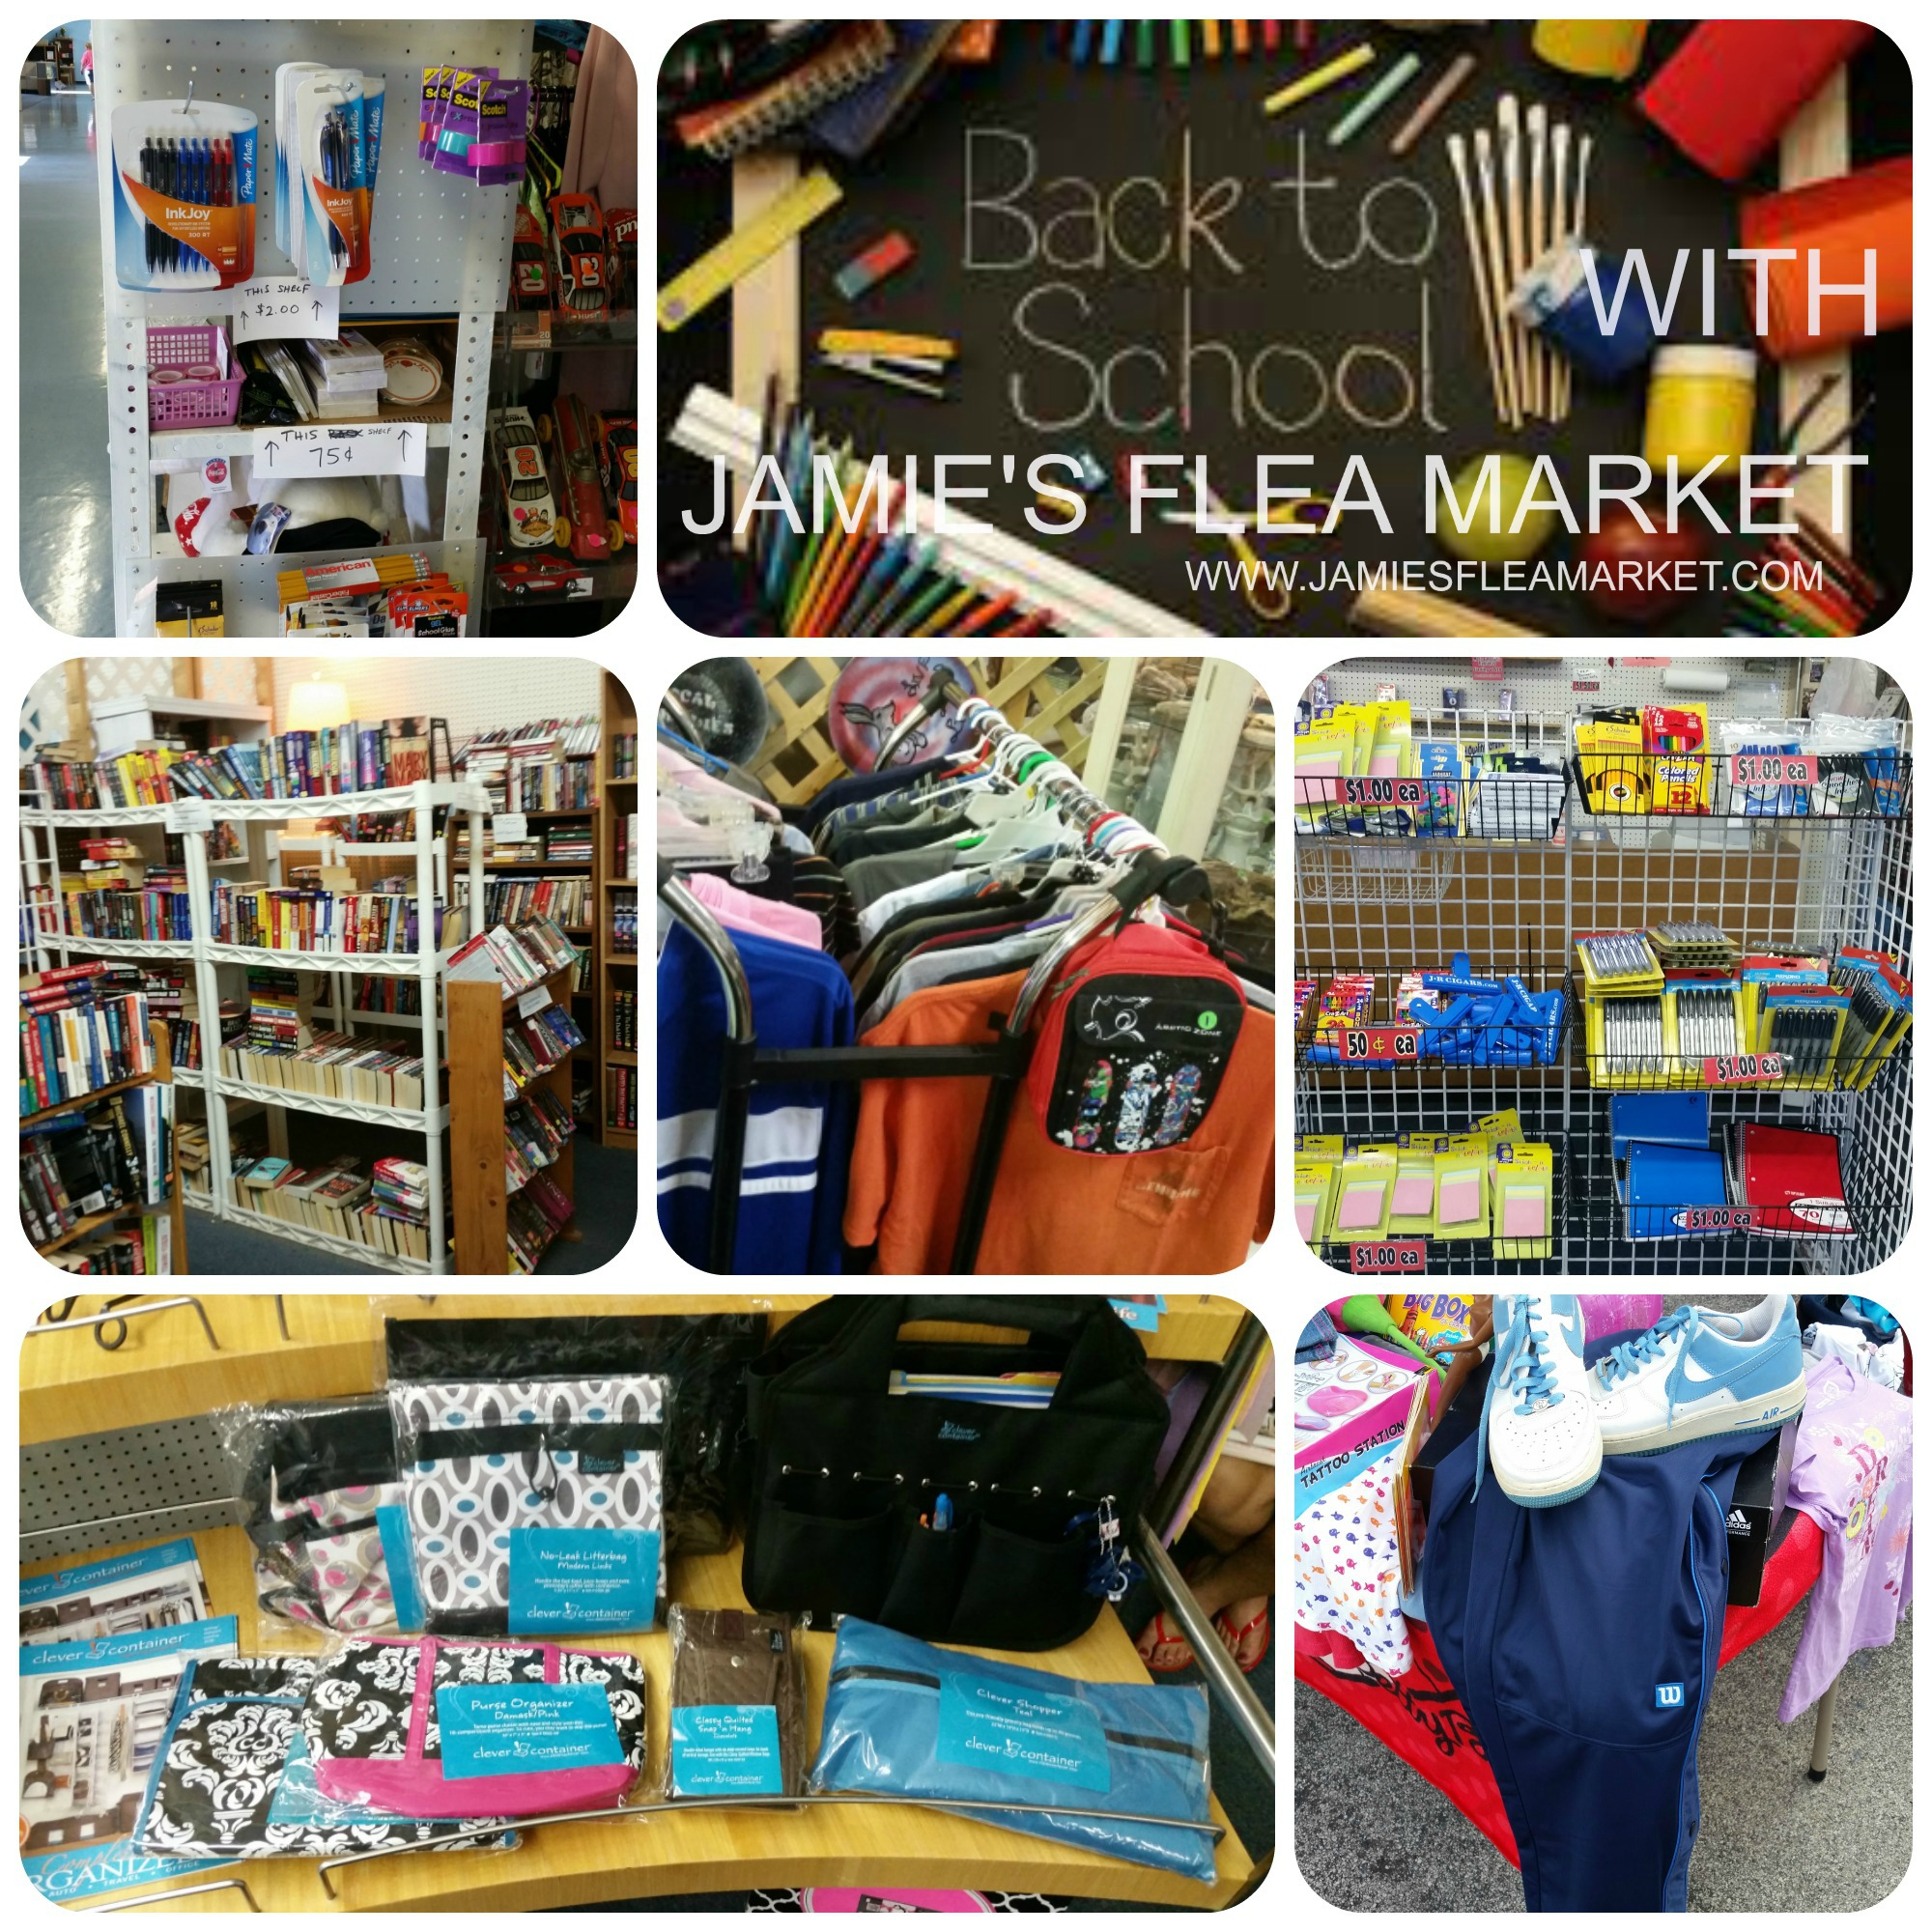 Get your Back to School at Jamie's Flea Market